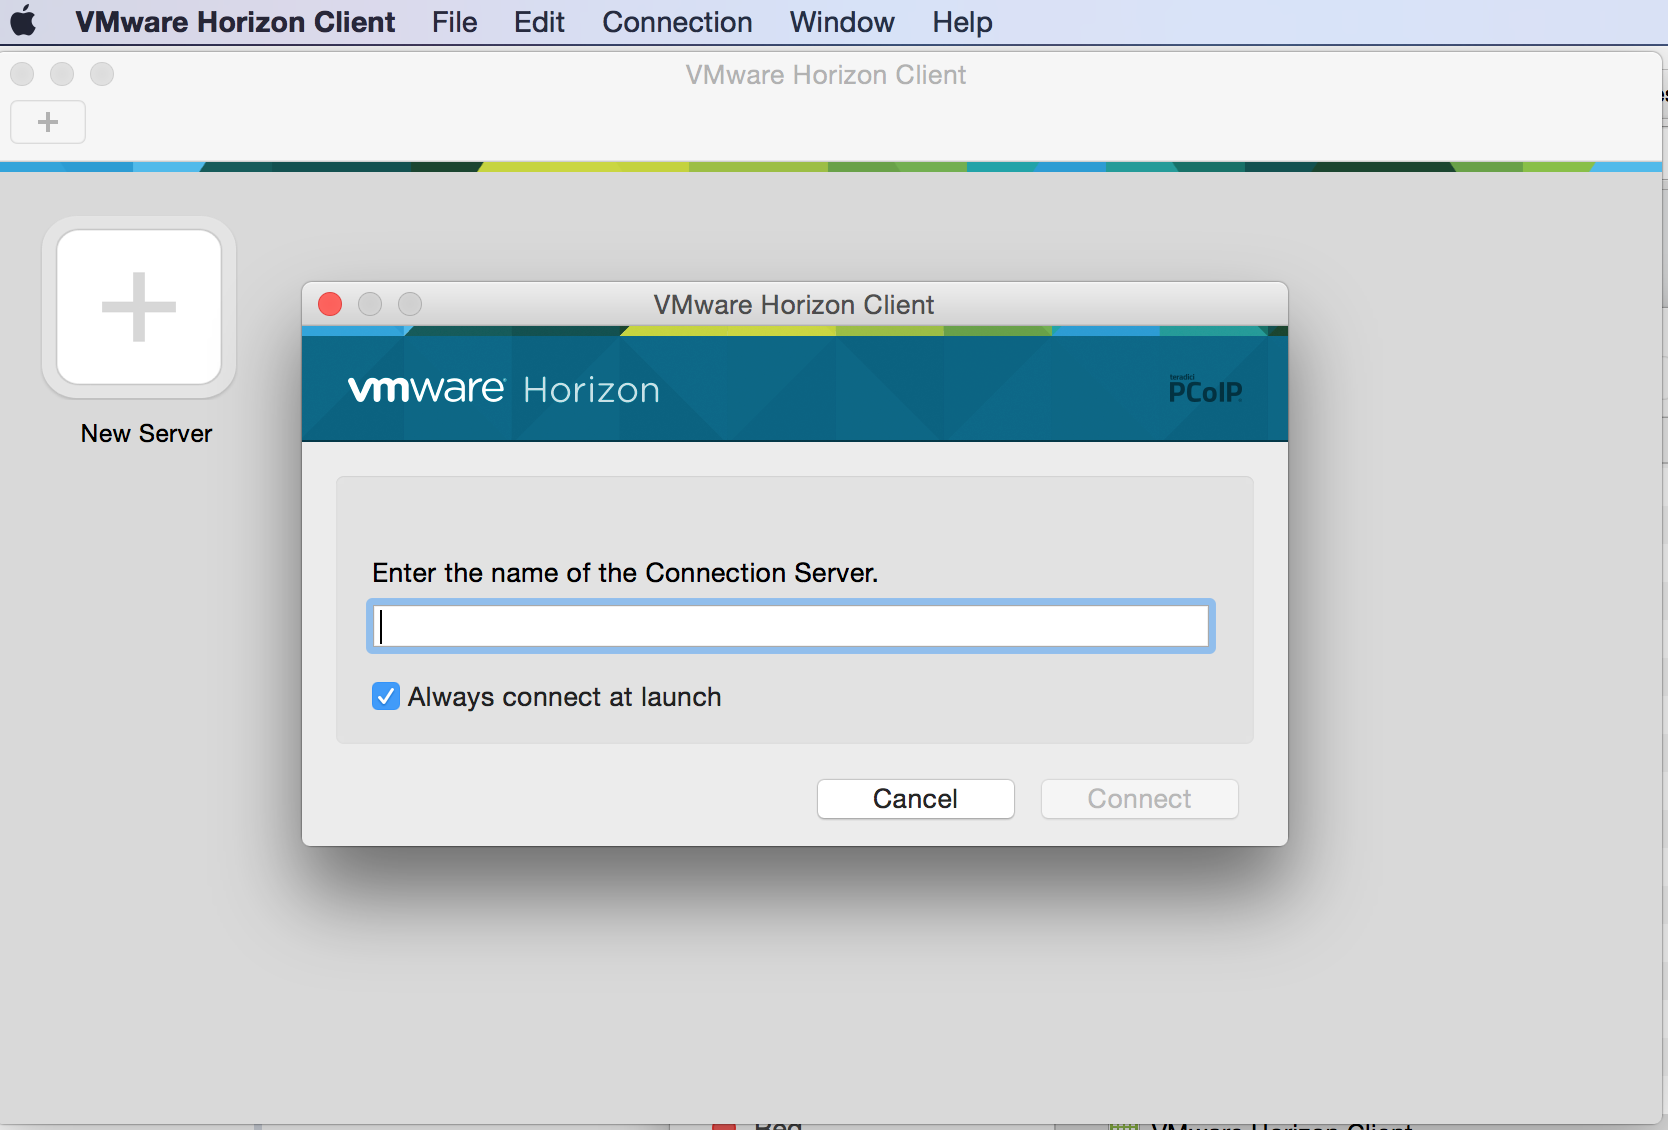 How to Publish VMware Horizon Client 3 5 2 in Self-Service (Need